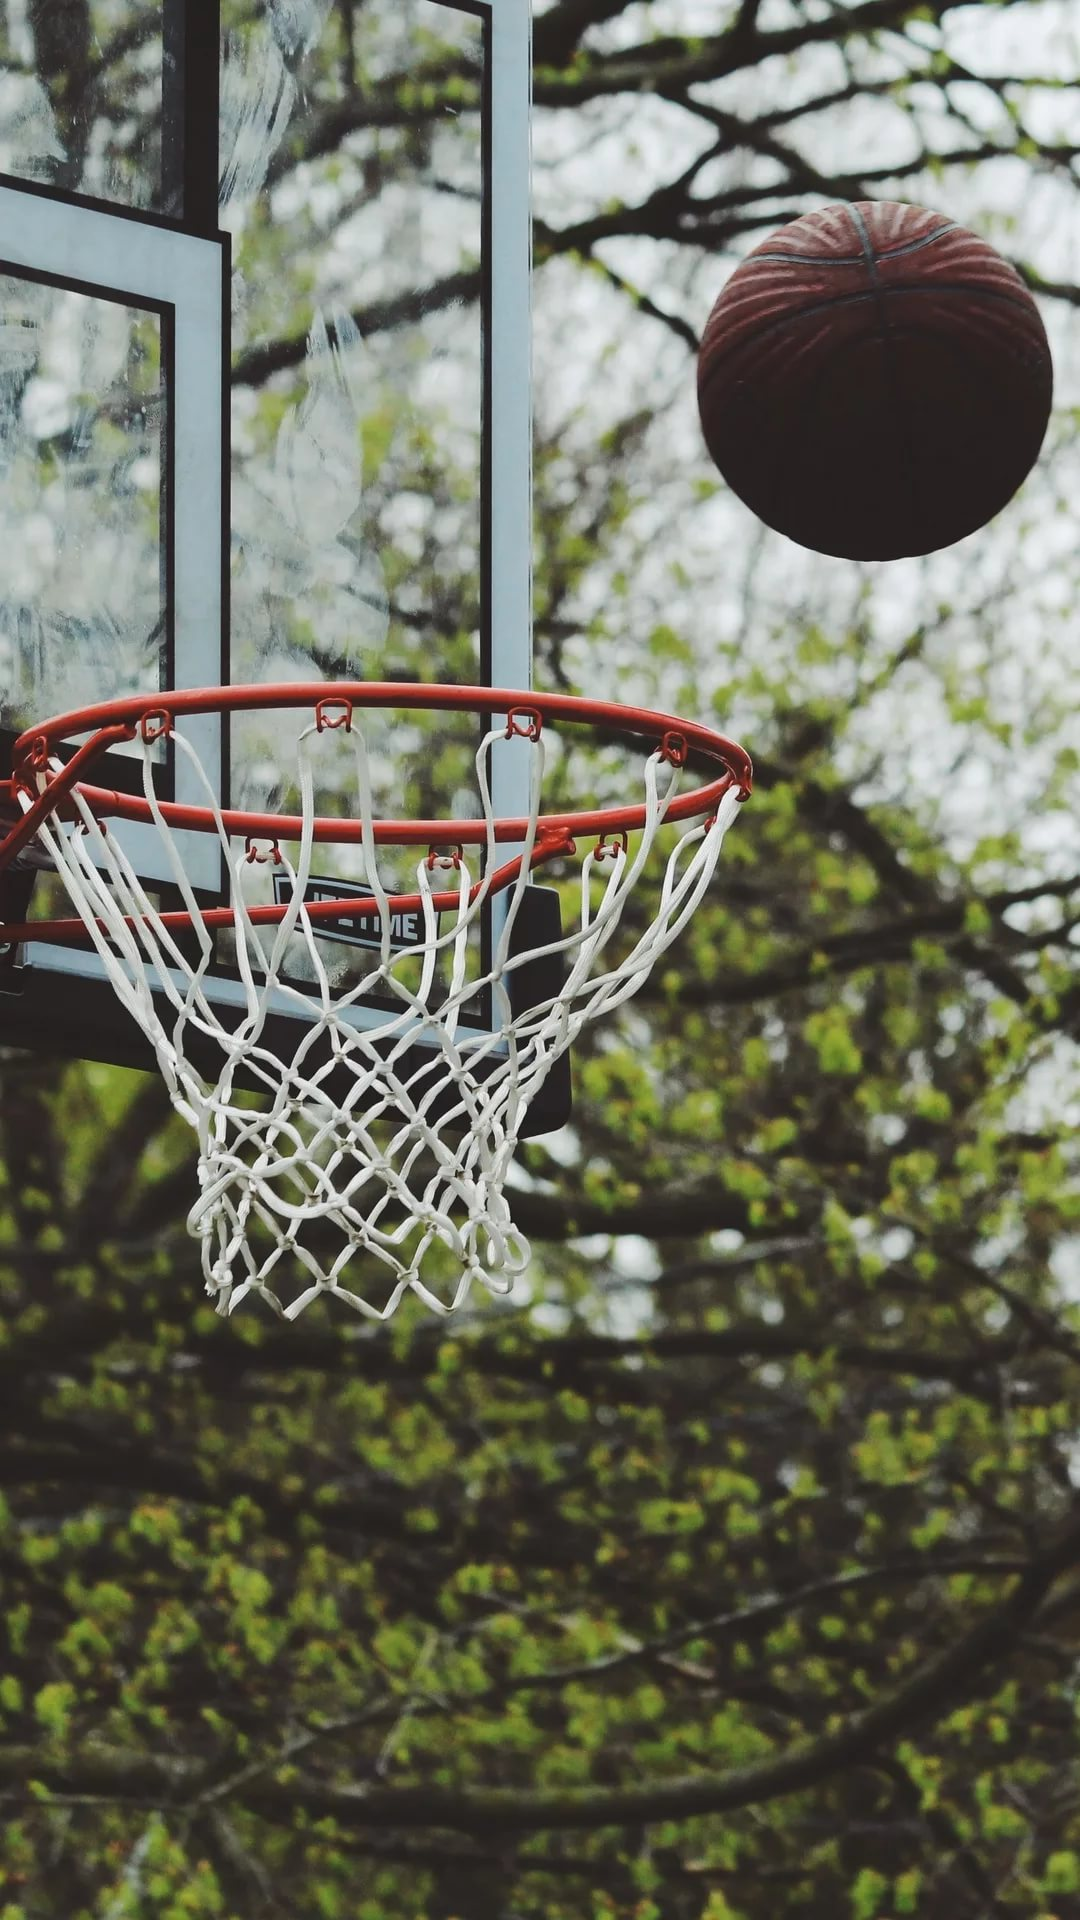 Basketball Court wallpaper for iPhone